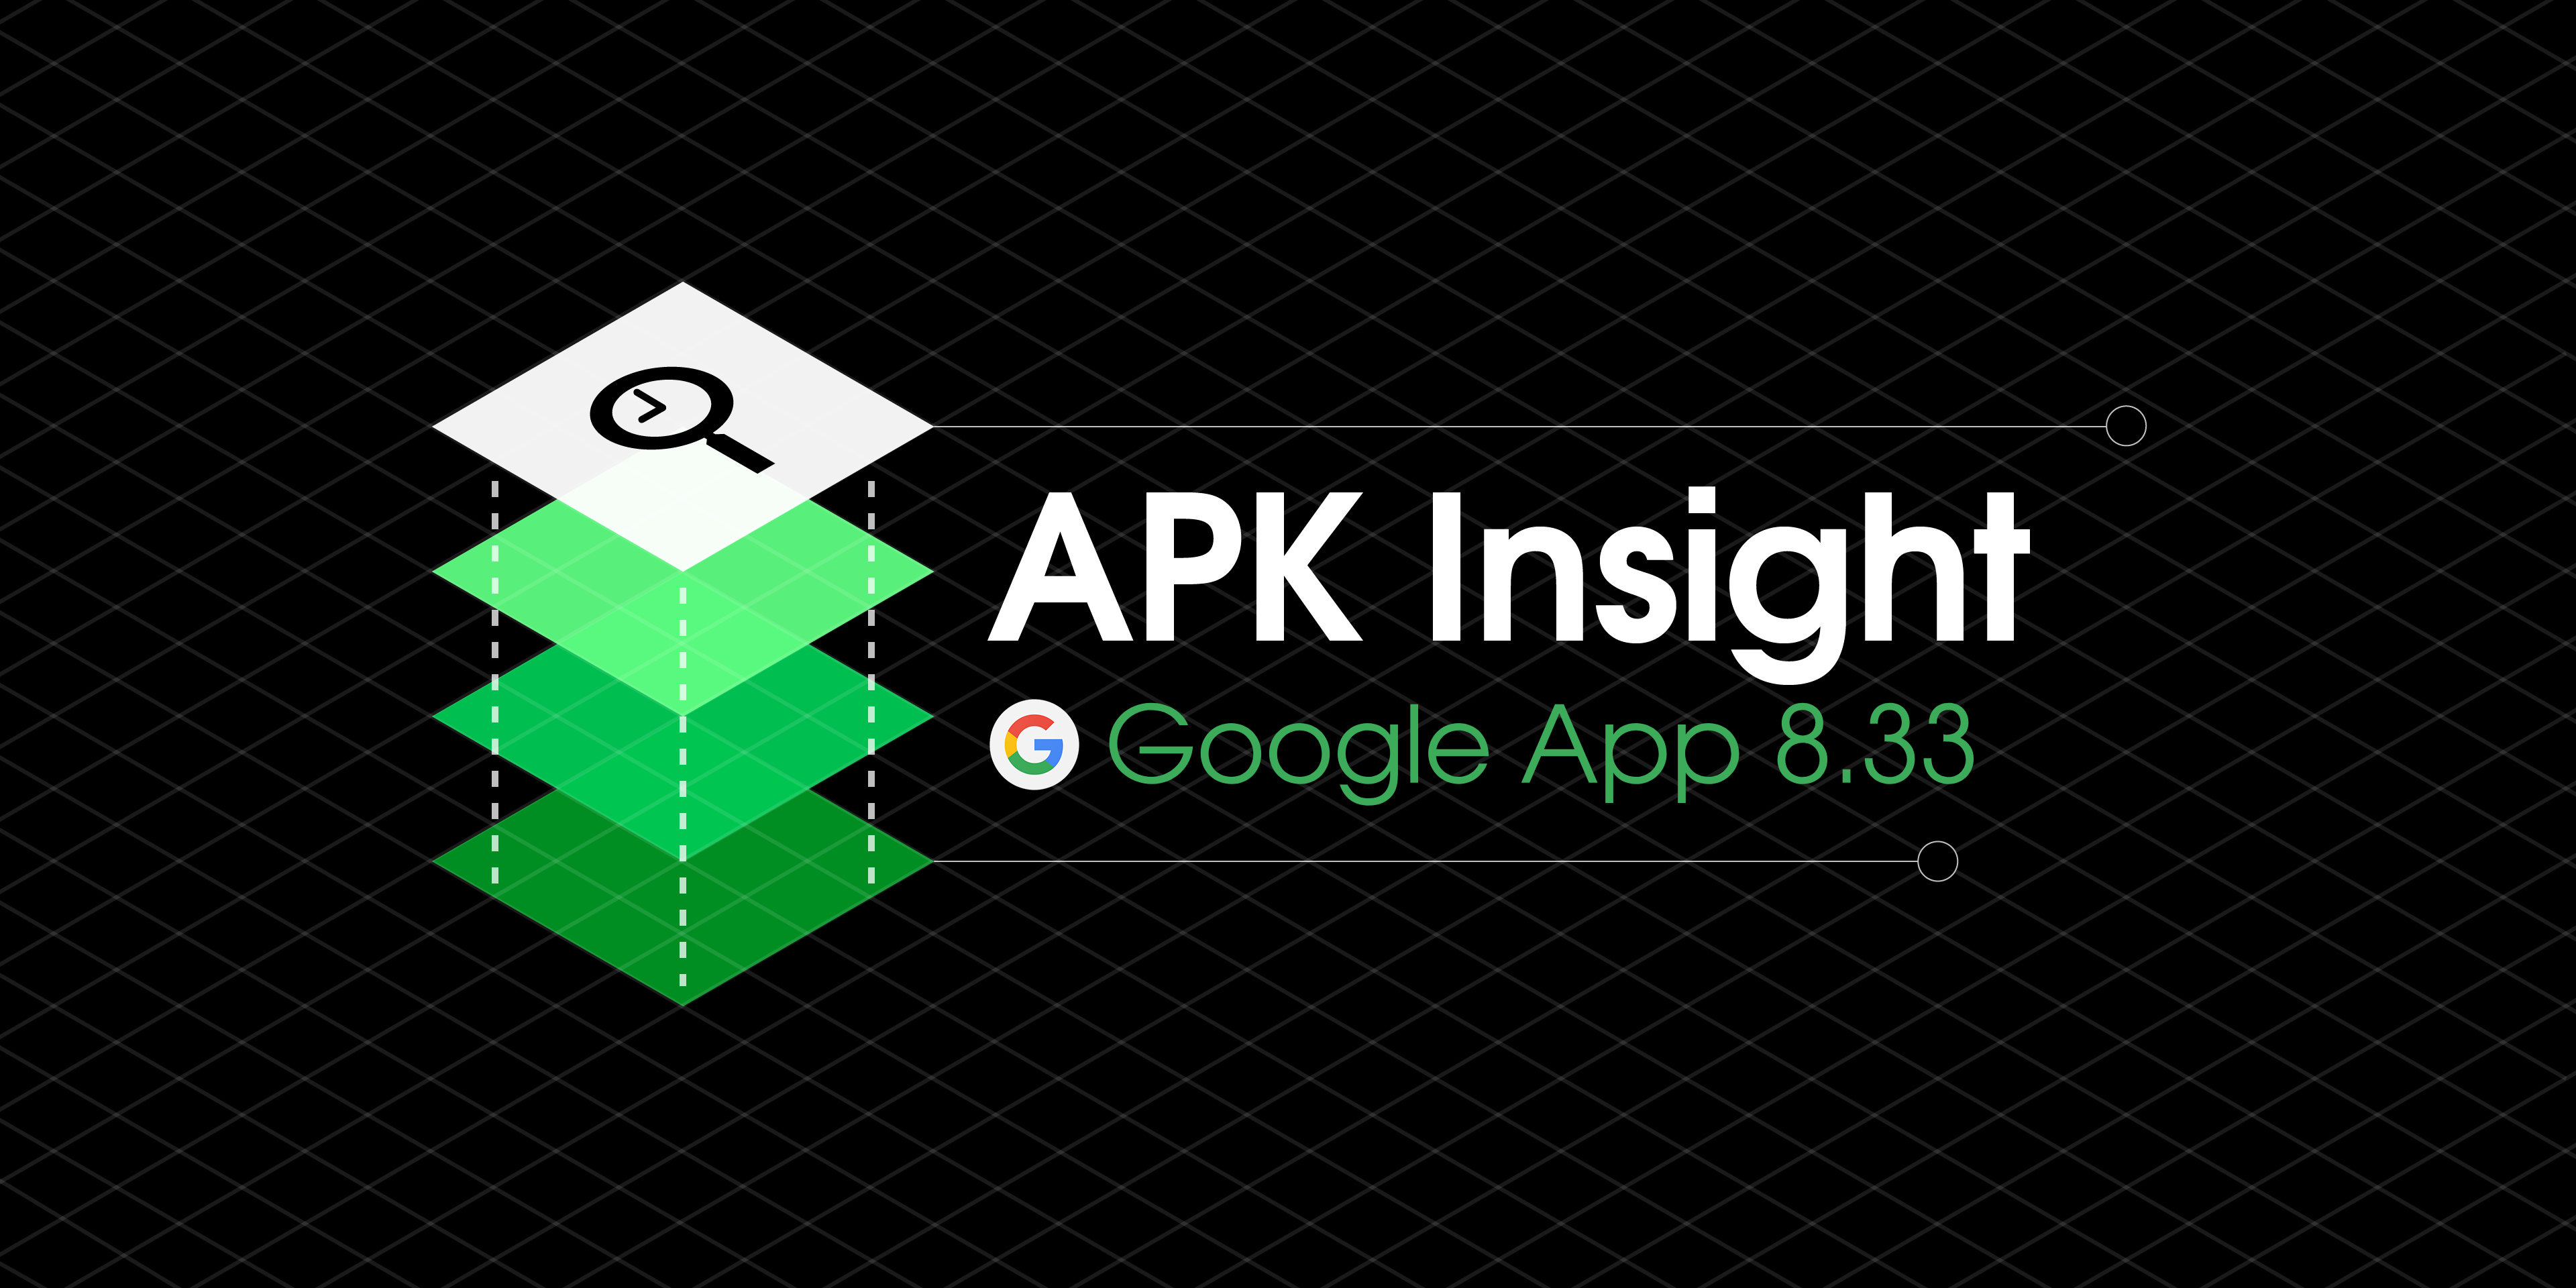 google app 8 33 preps assistant personalized news lists and notes web app more apk insight